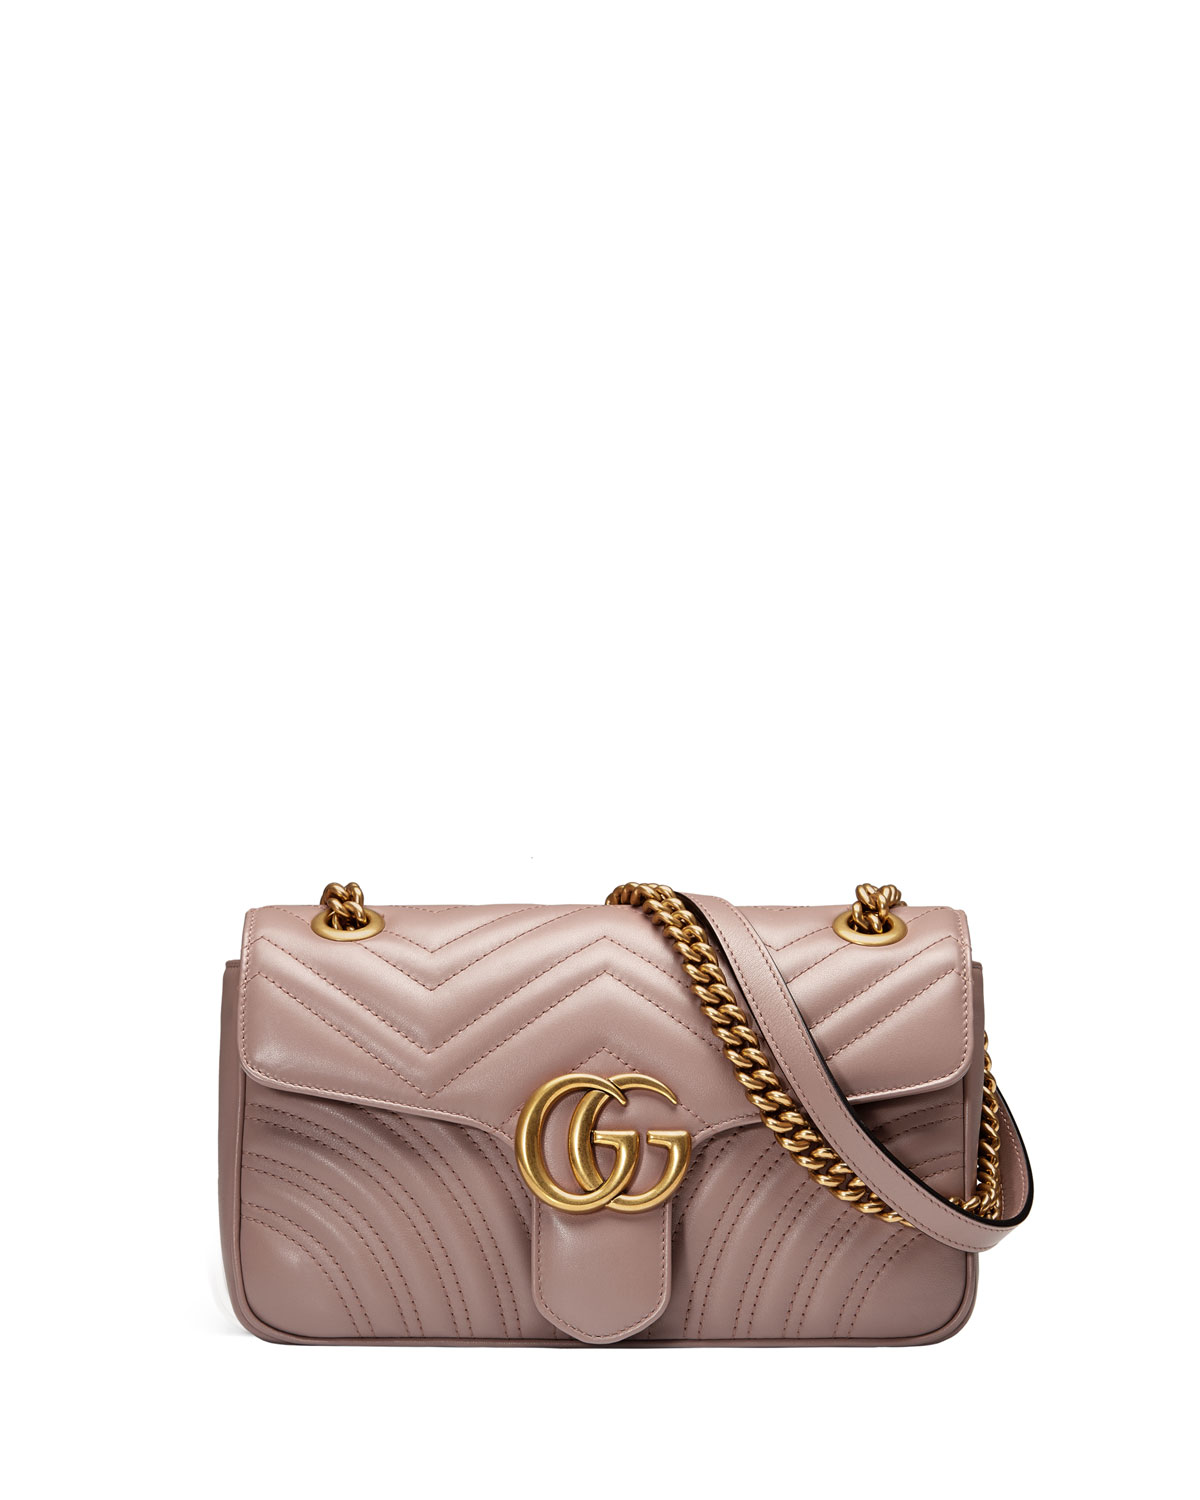 972d17b53dd8a5 Quick Look. Gucci · GG Marmont Small Matelasse Shoulder Bag